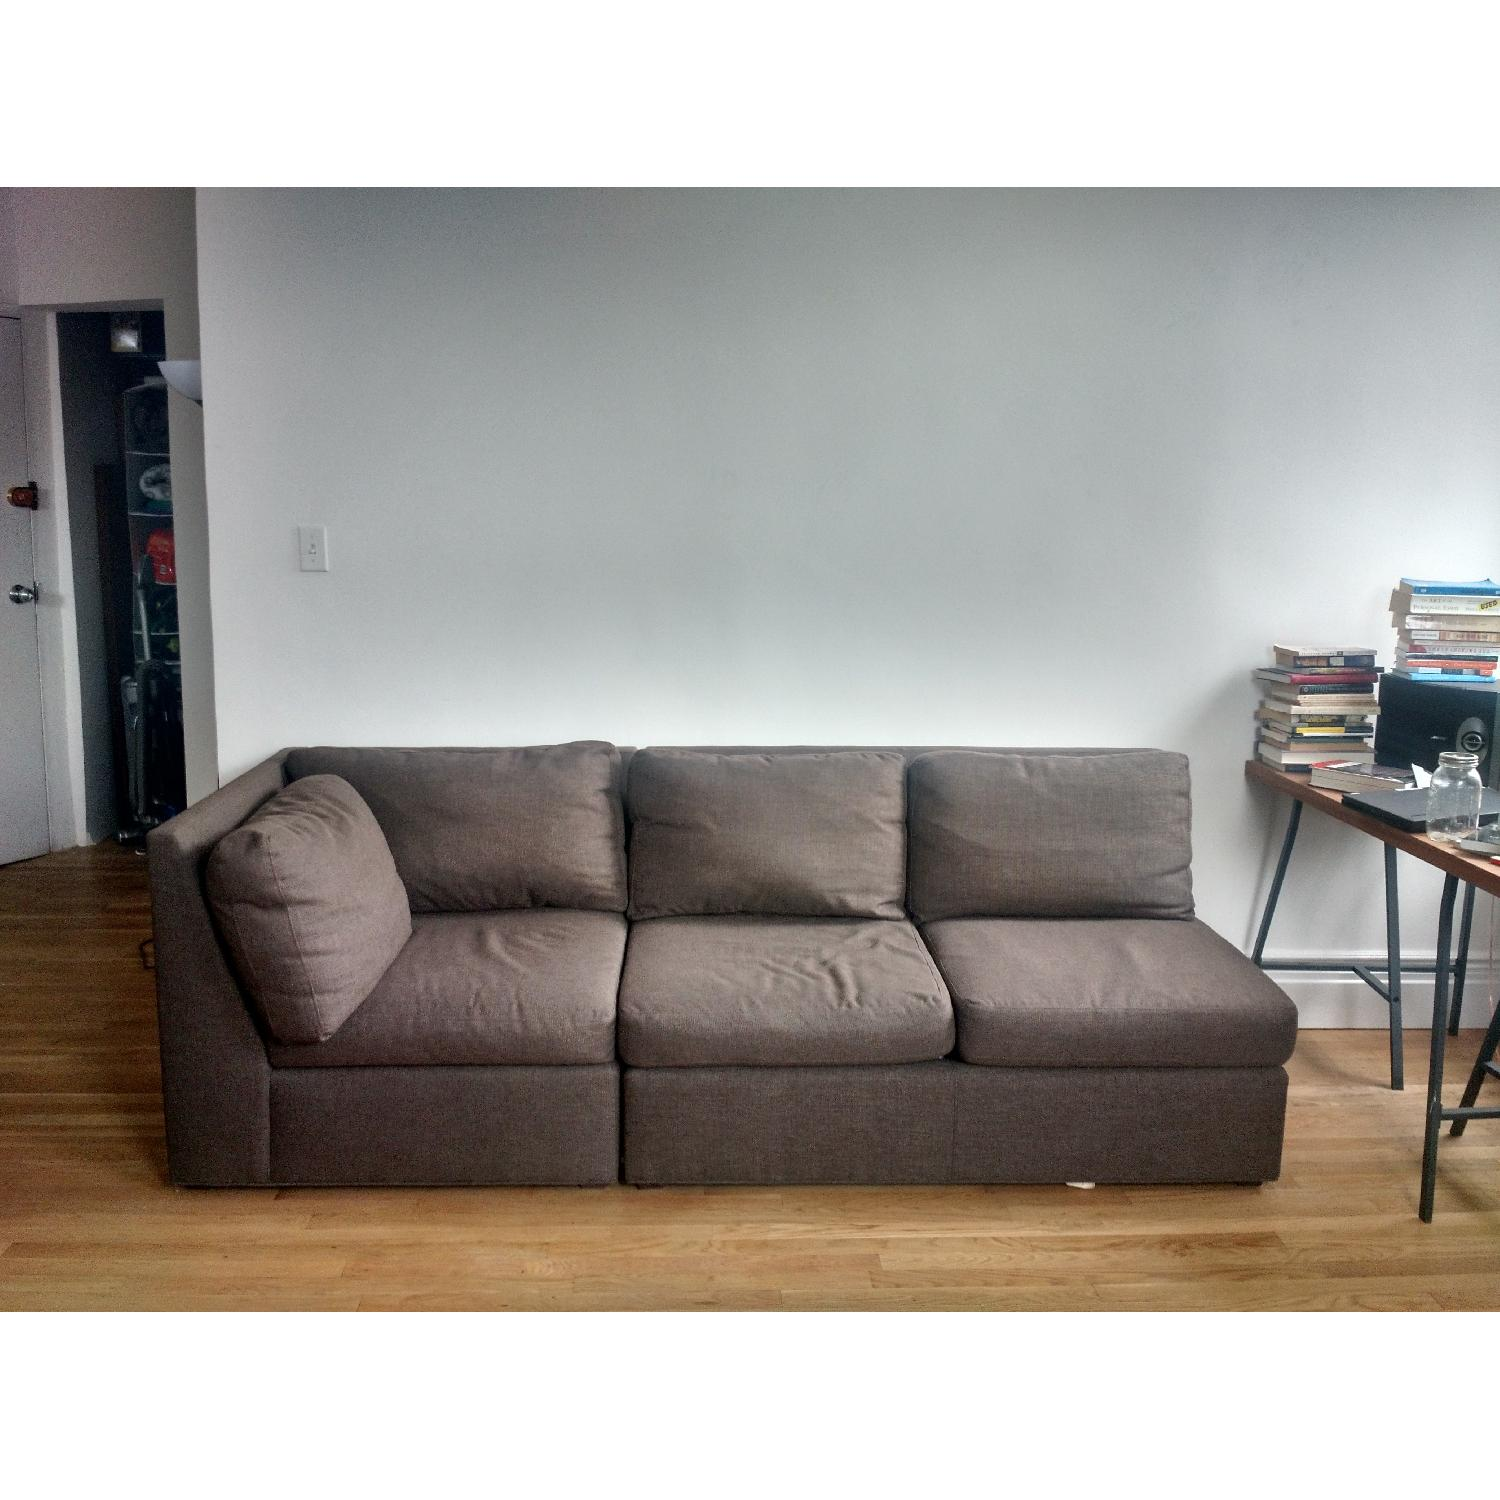 Crate & Barrel City Two-Piece Sectional - image-5